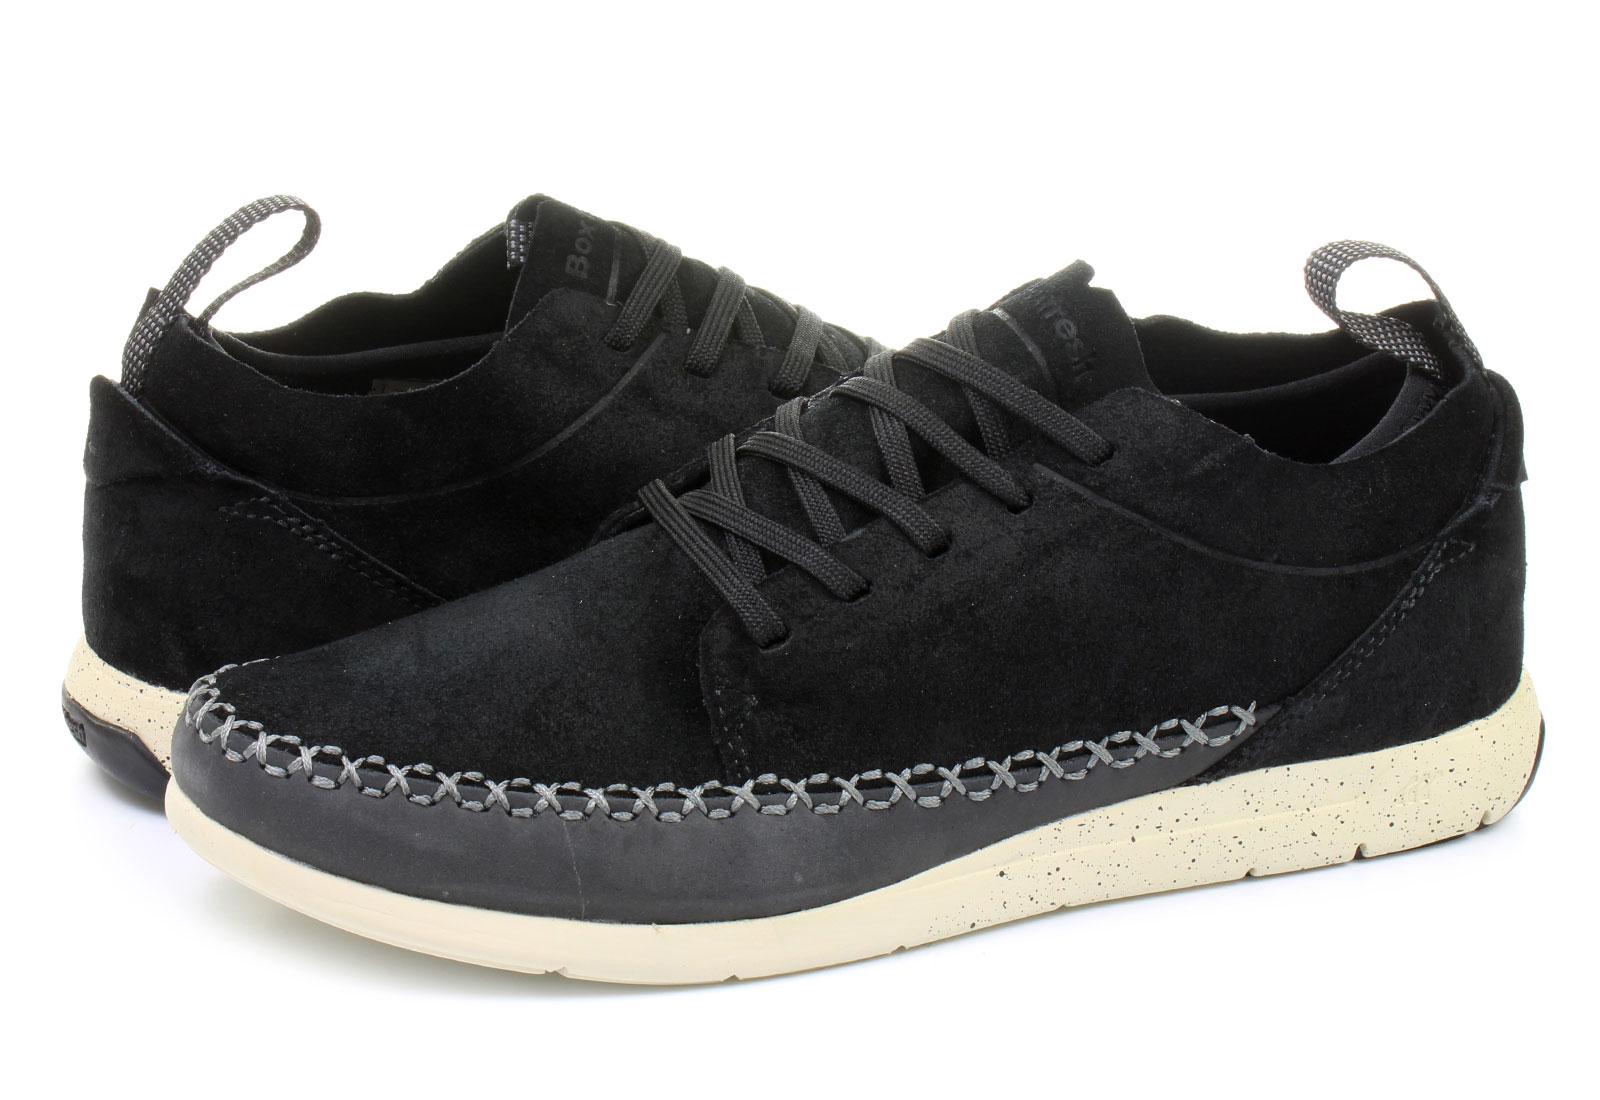 hot sale online 45e08 61156 Boxfresh Shoes - Rudiment - E14827-blk - Online shop for sneakers, shoes  and boots